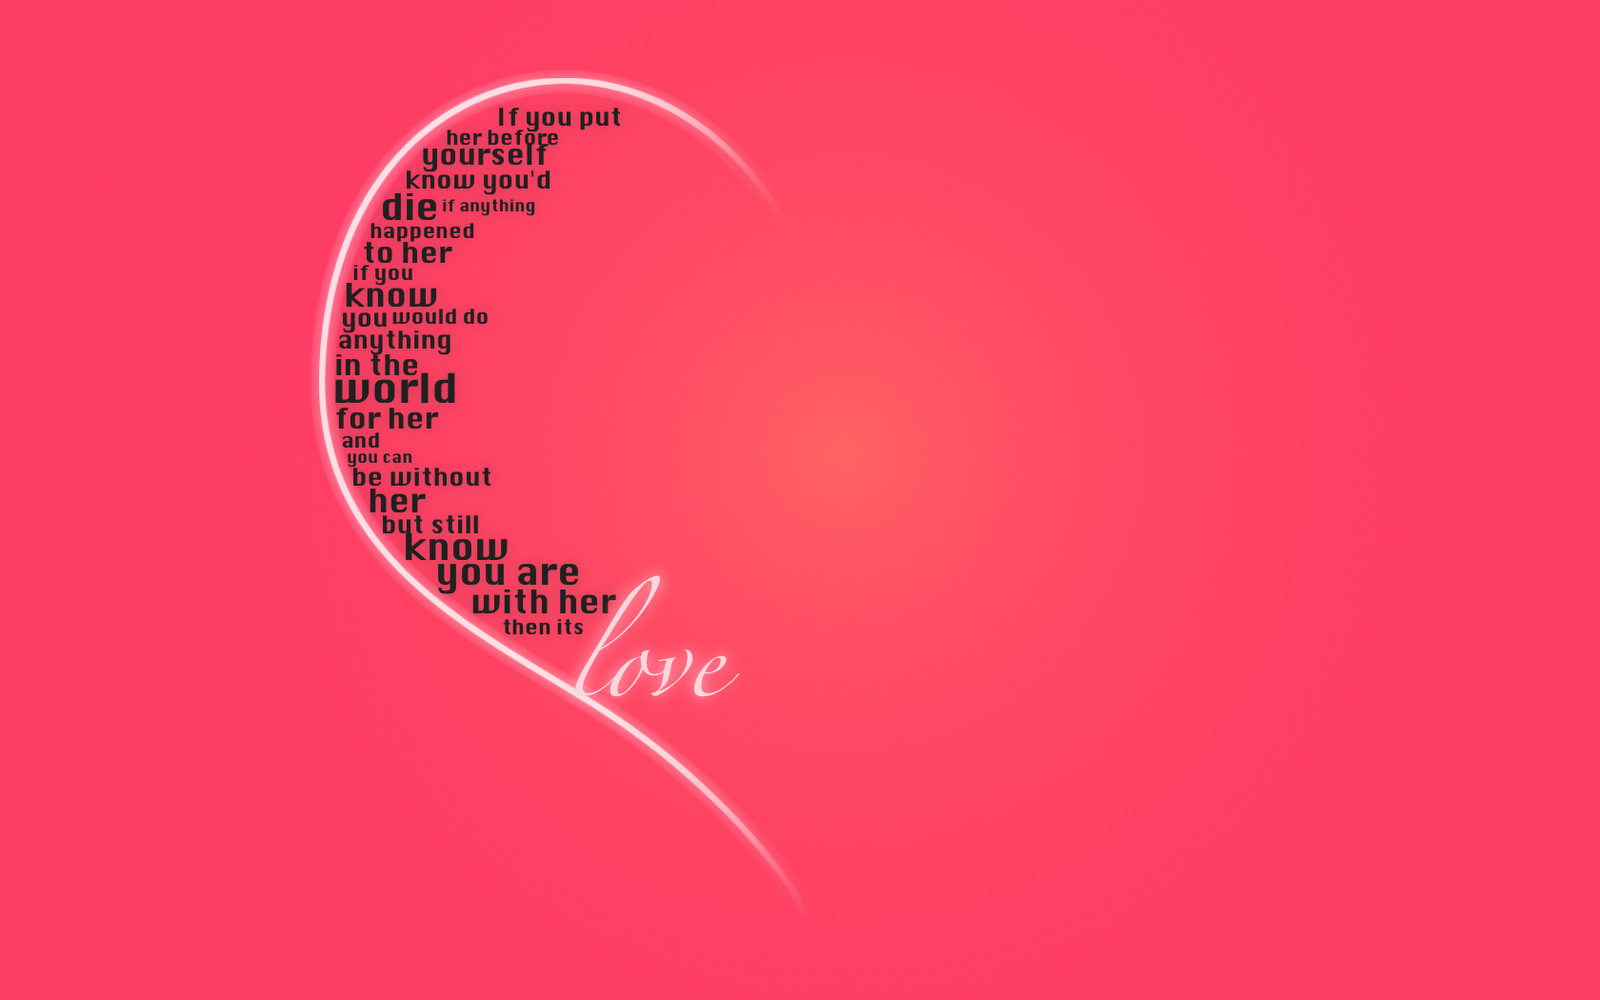 love then hate wallpapers - photo #6